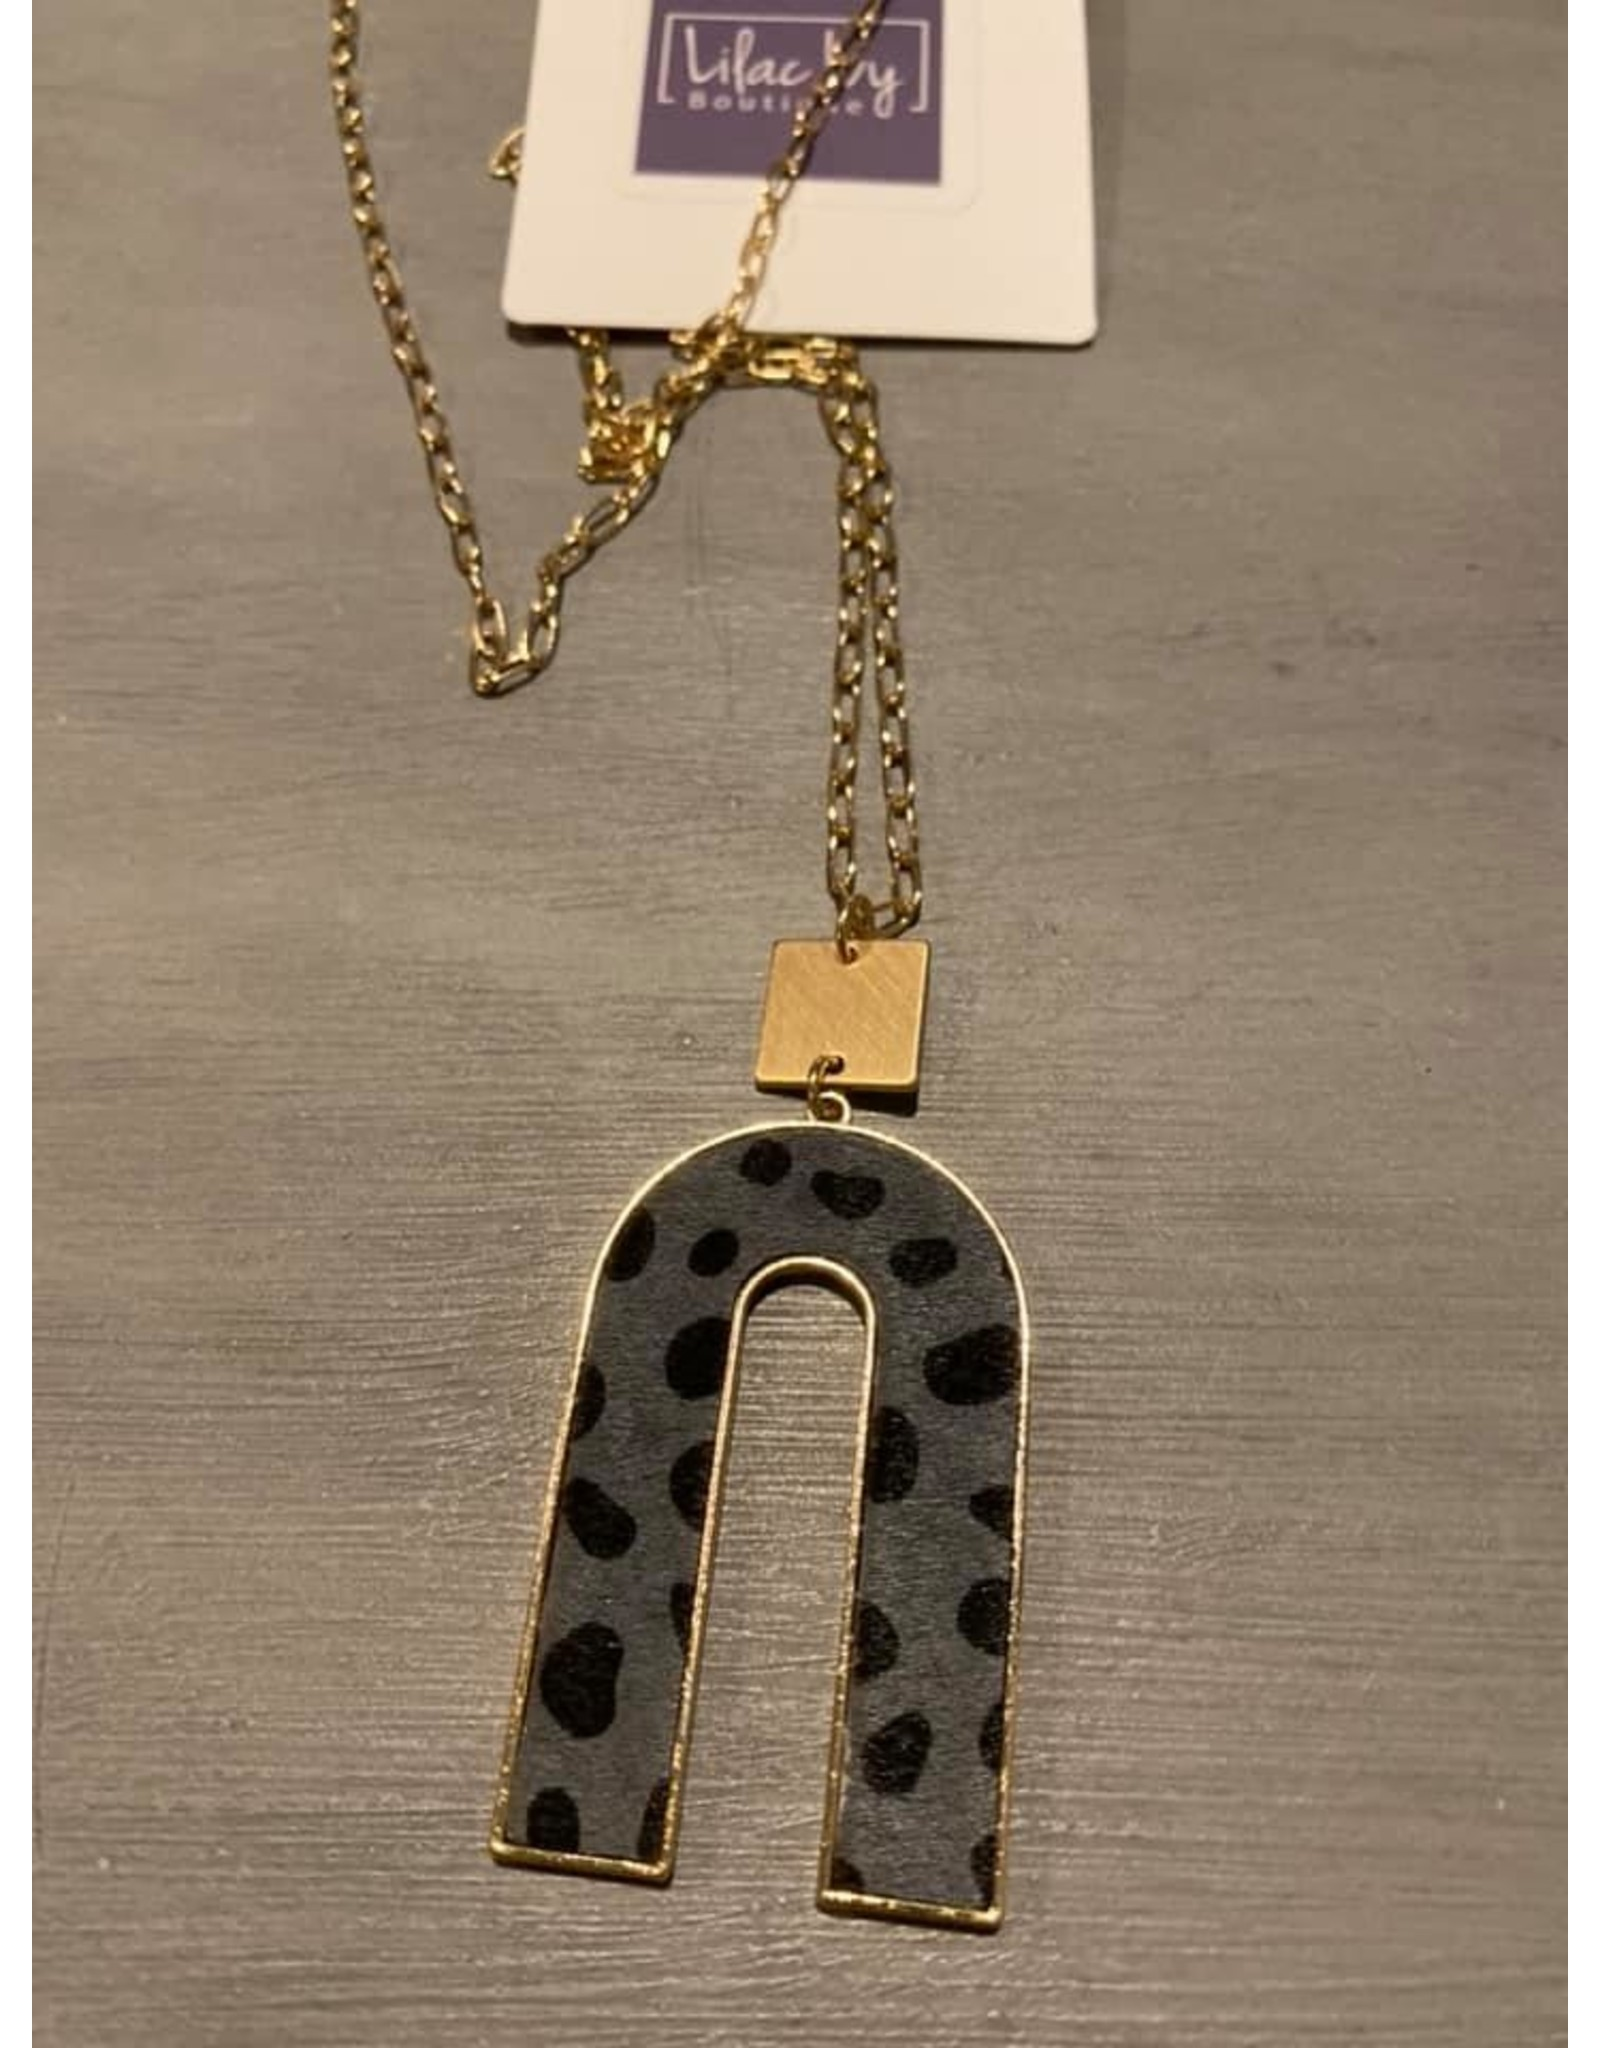 Inverted U long necklace - gray/blue or brown